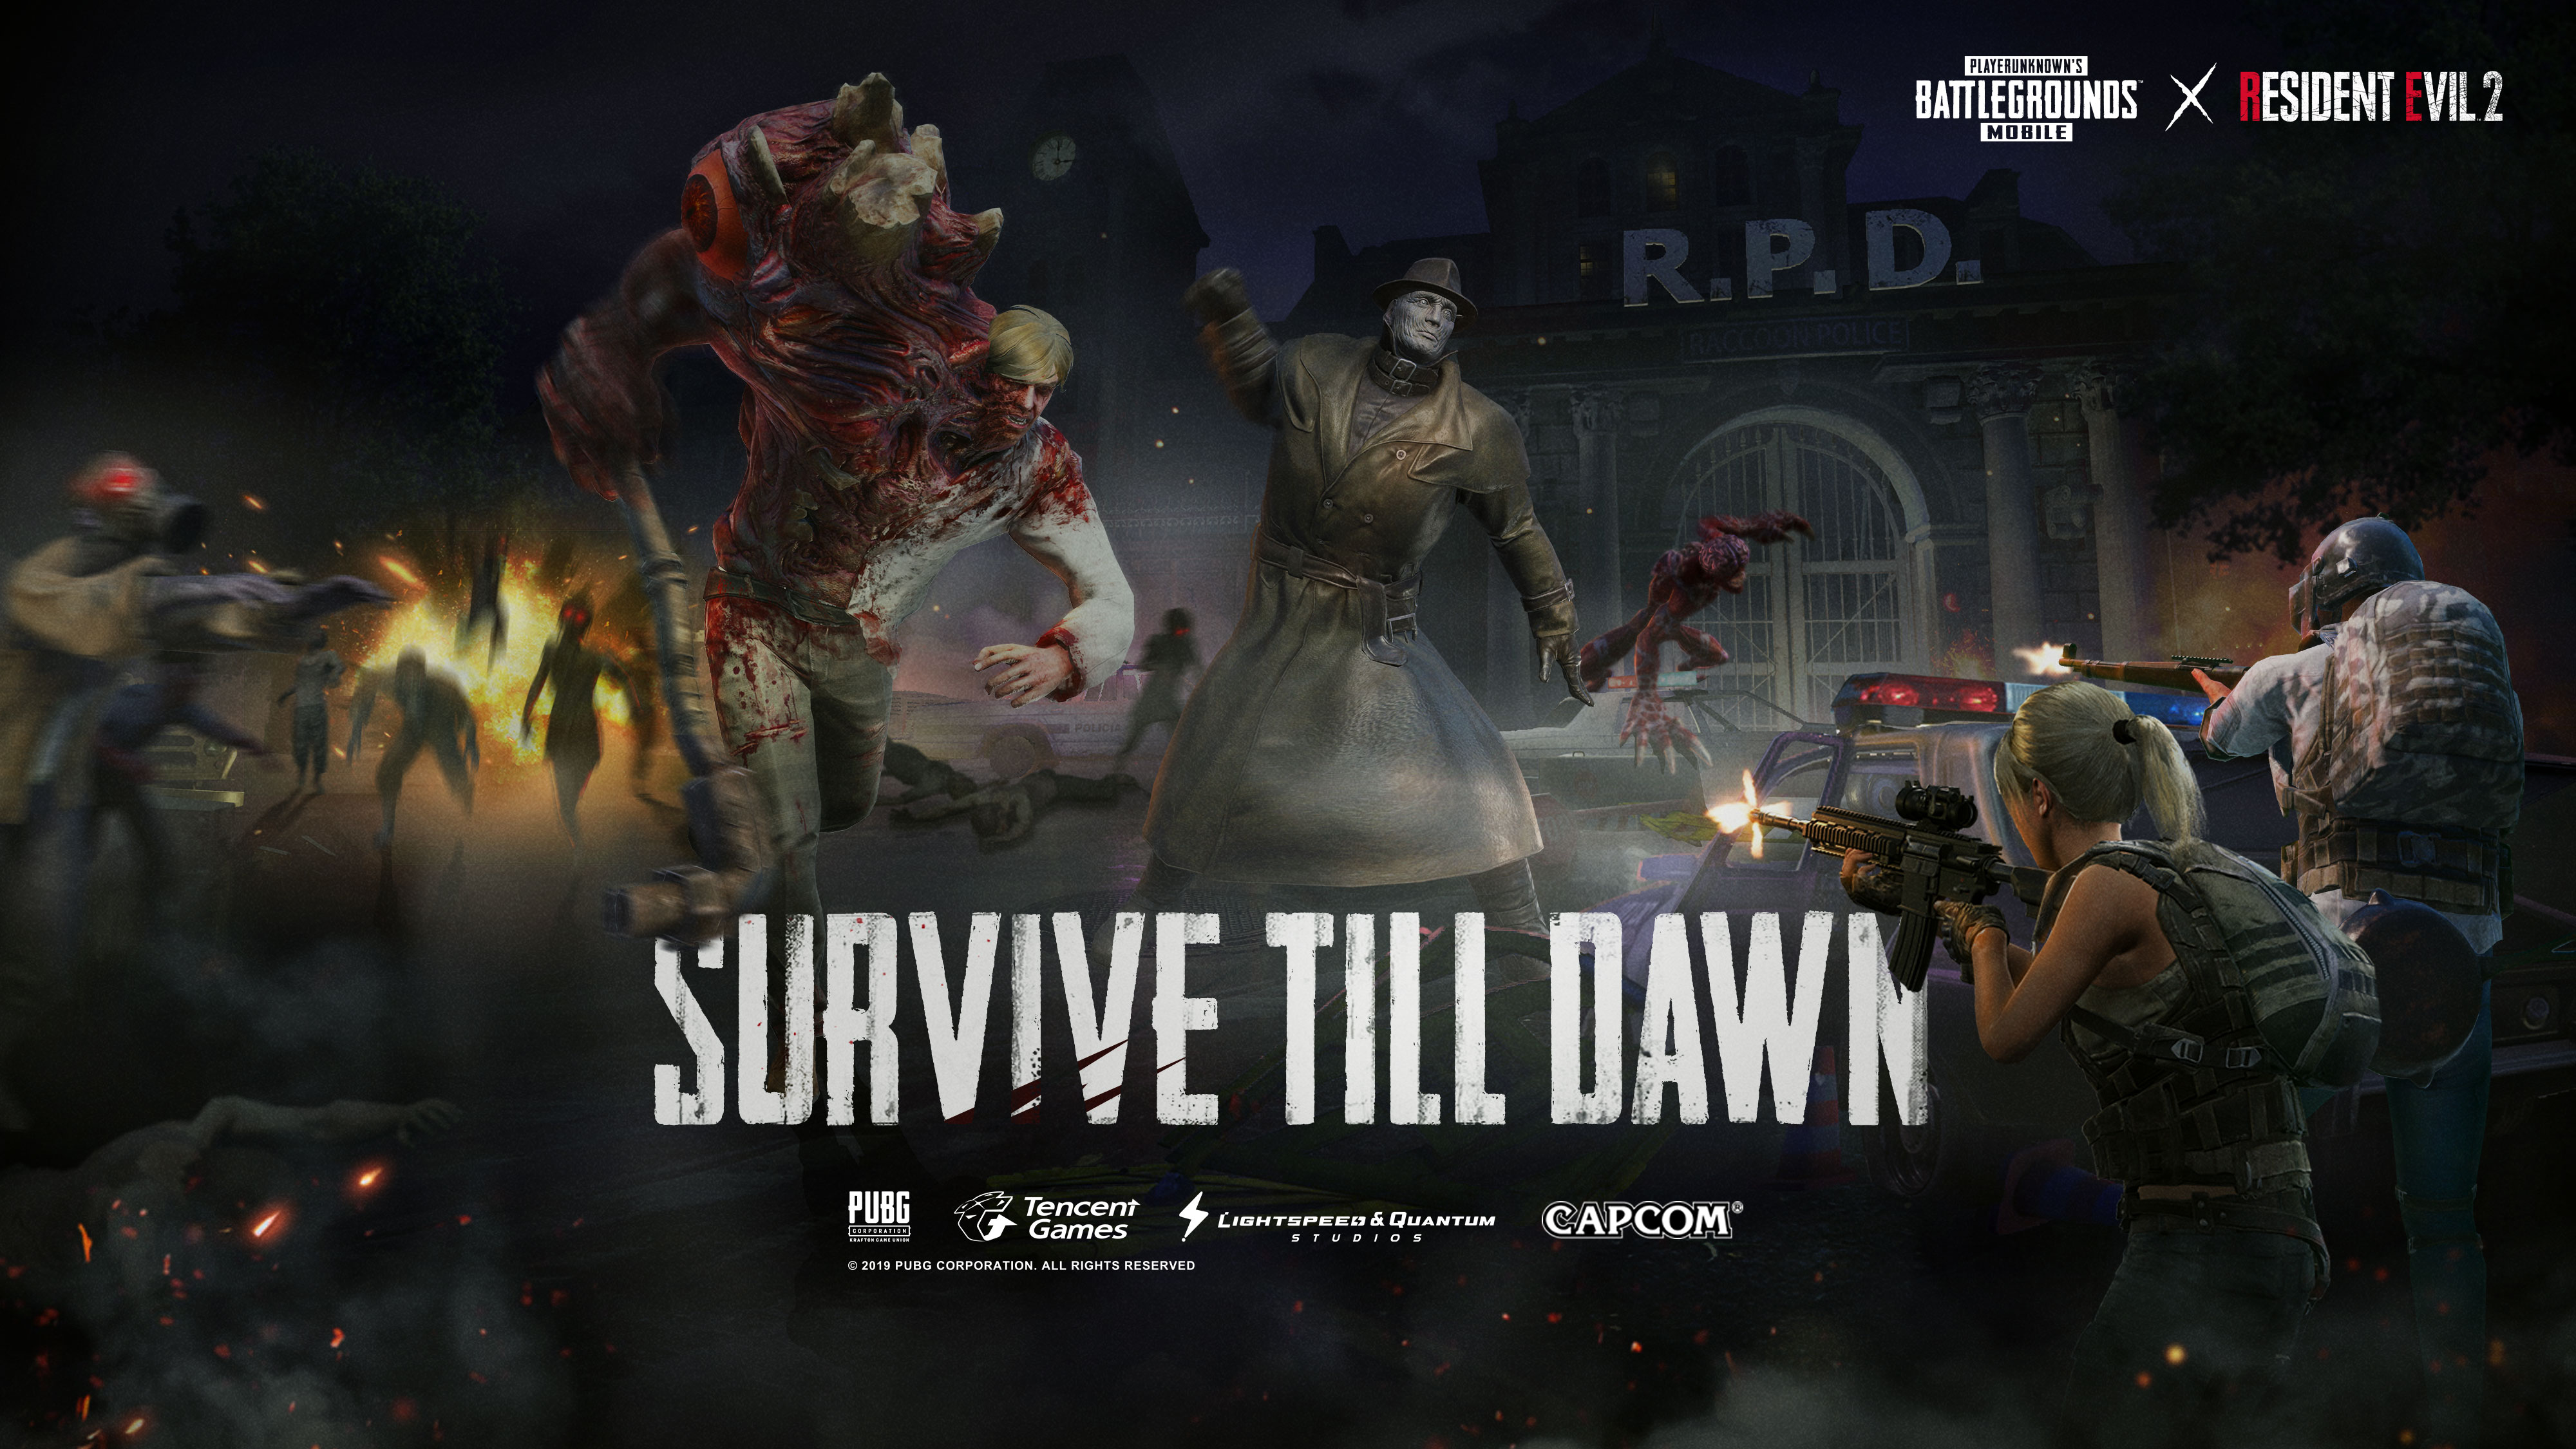 Pubg Mobile X Resident Evil 2 Cross Over Event Mode Is Live -